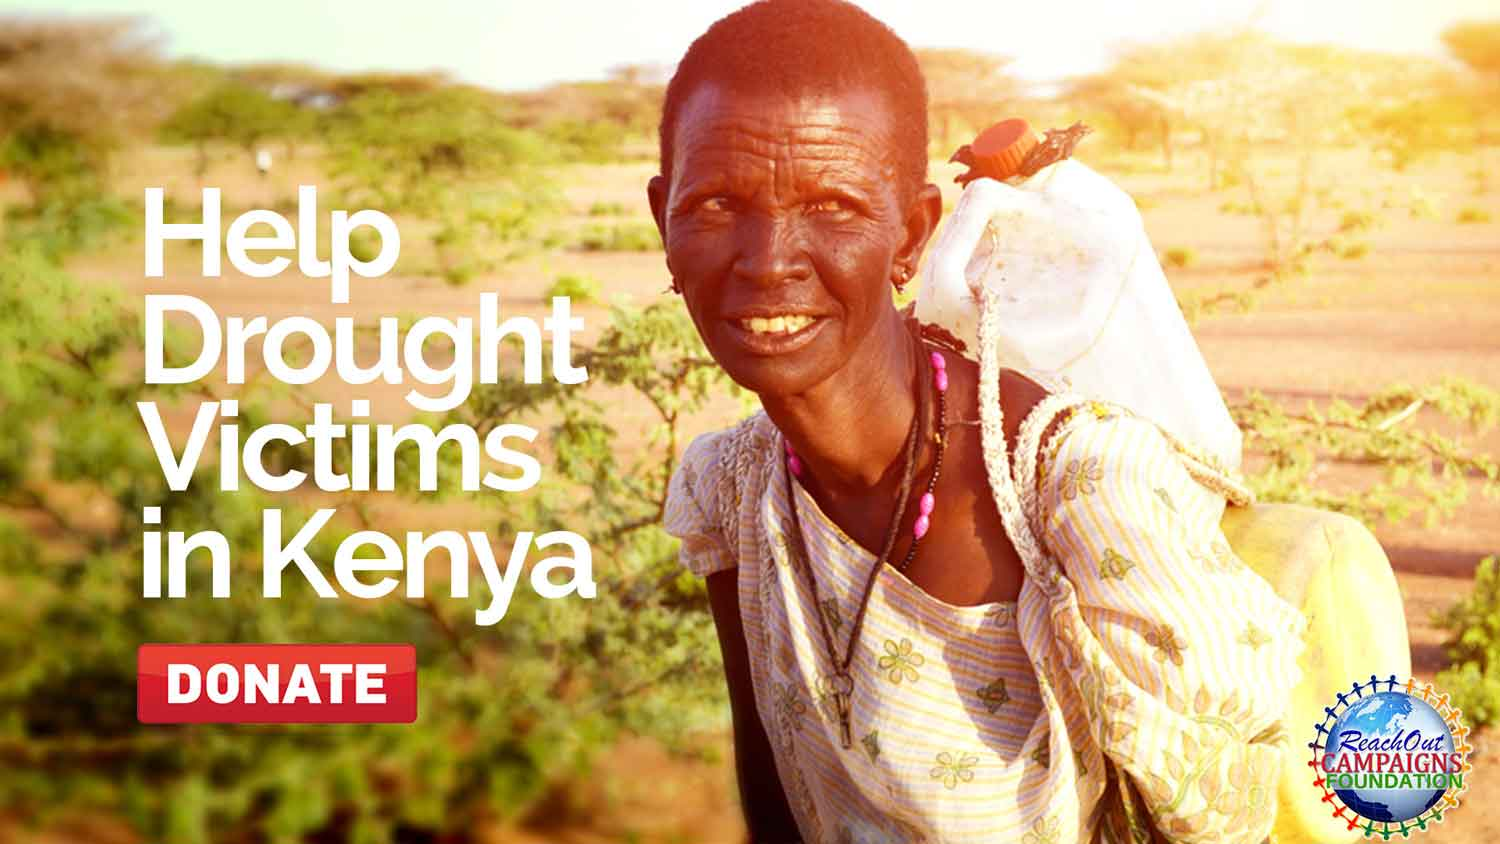 Help Drought Victims in Kenya